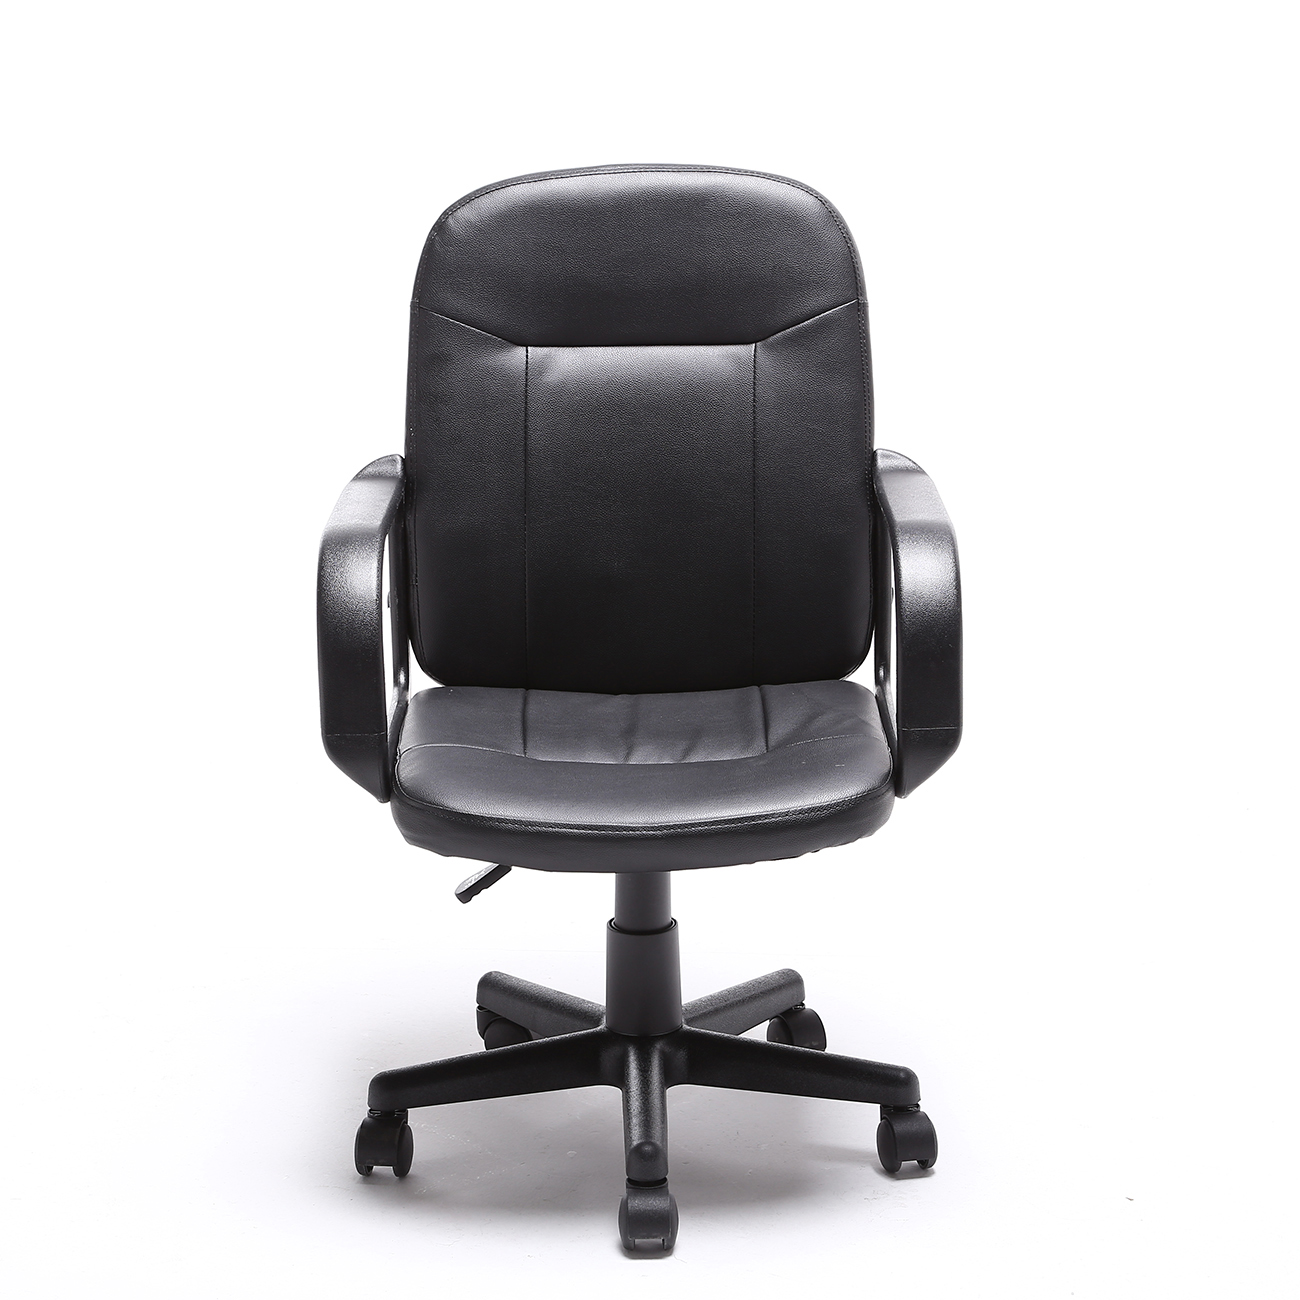 black modern office executive chair pu leather computer desk task hydraulic new ebay. Black Bedroom Furniture Sets. Home Design Ideas